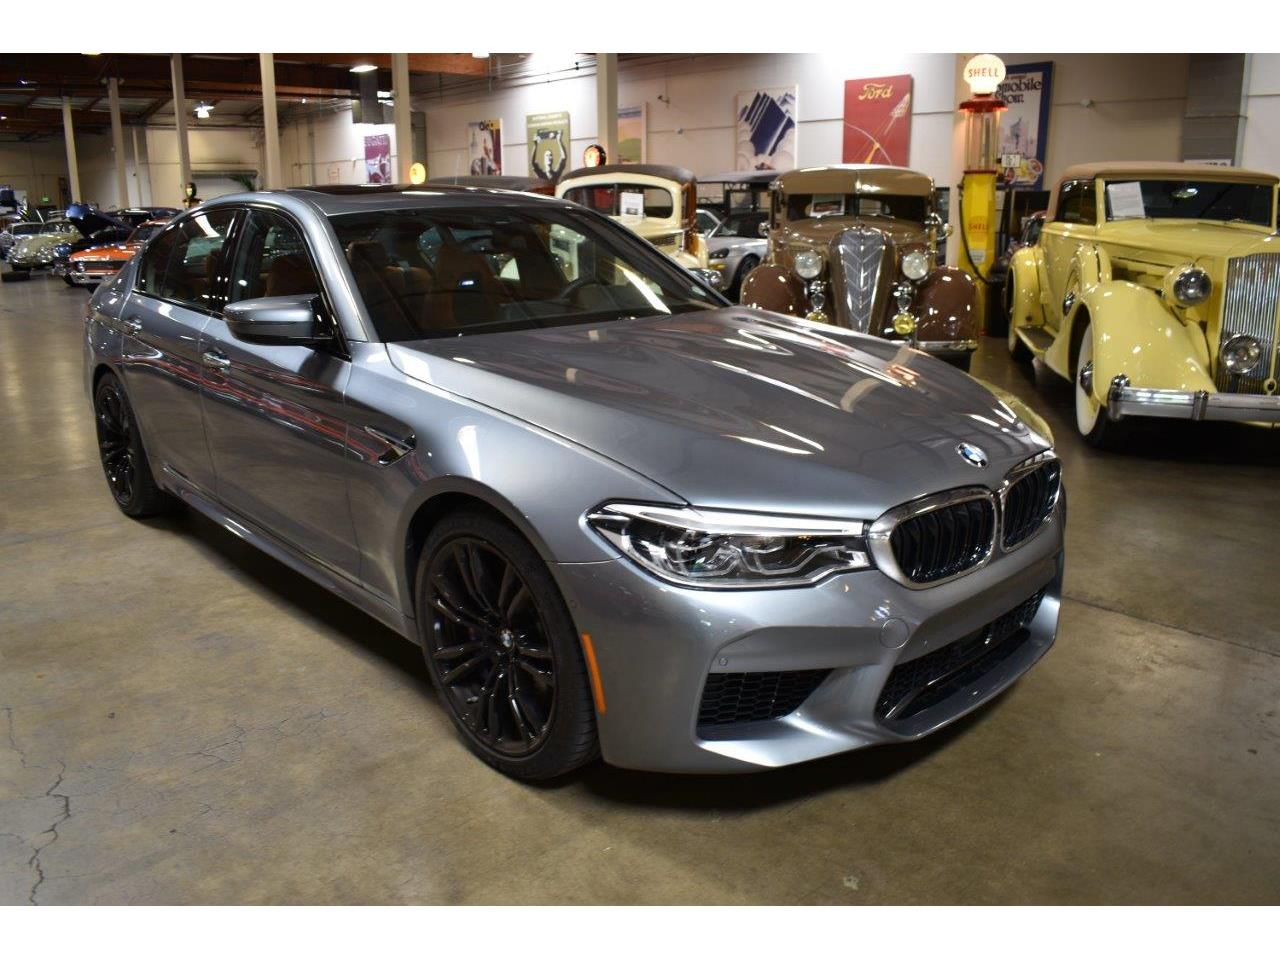 2018 BMW M5 (CC-1212526) for sale in Costa Mesa, California